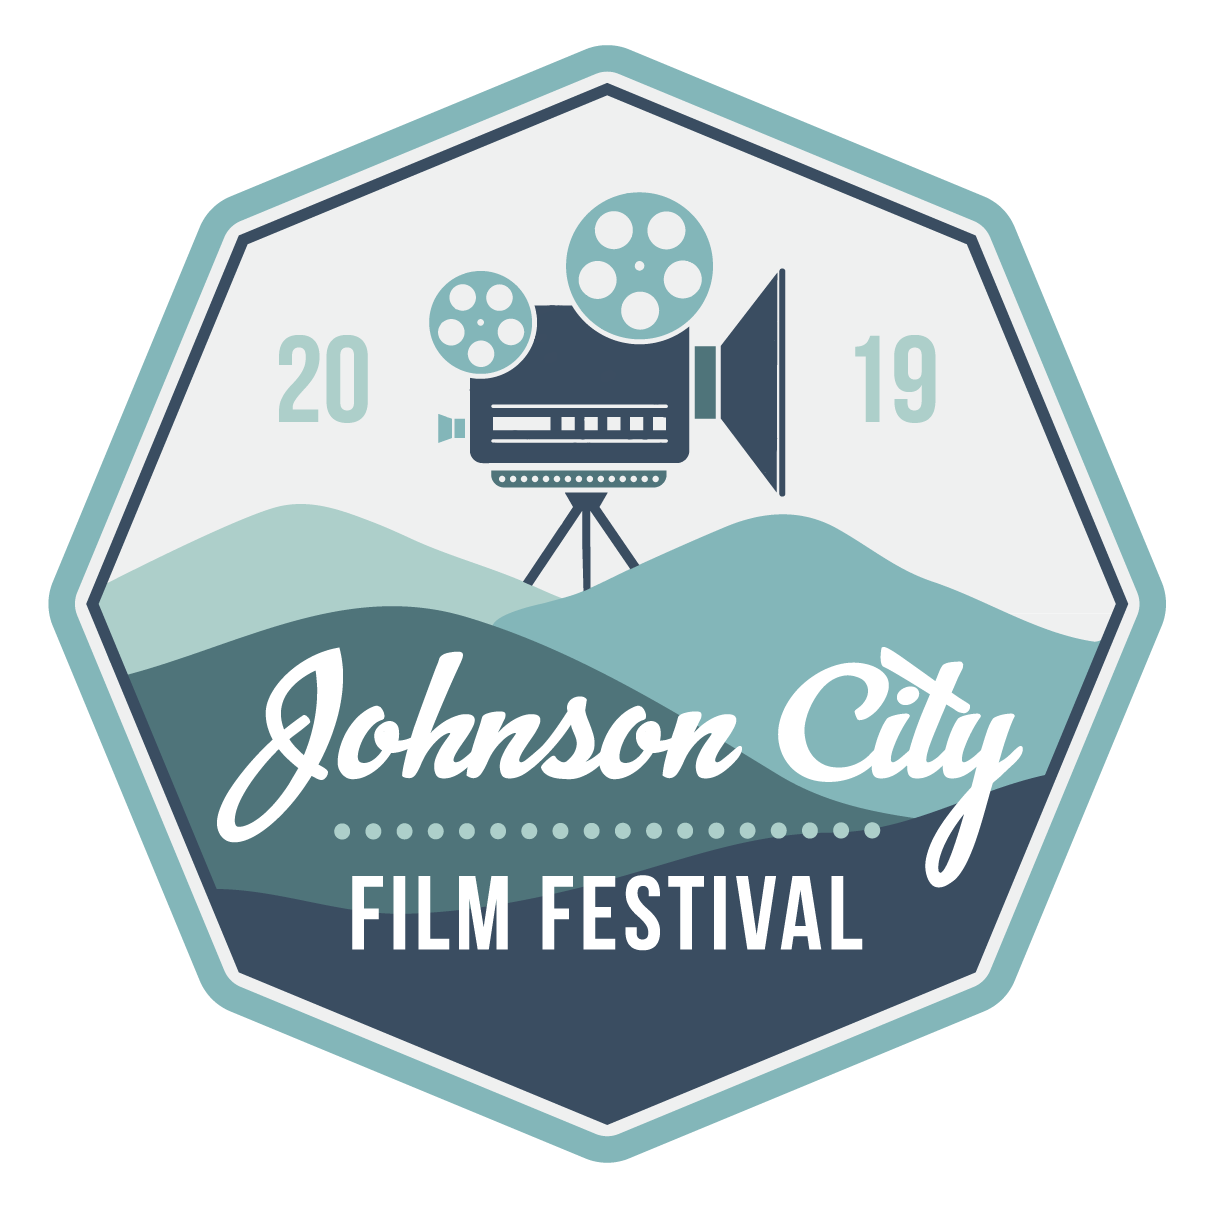 Johnson City Film Festival